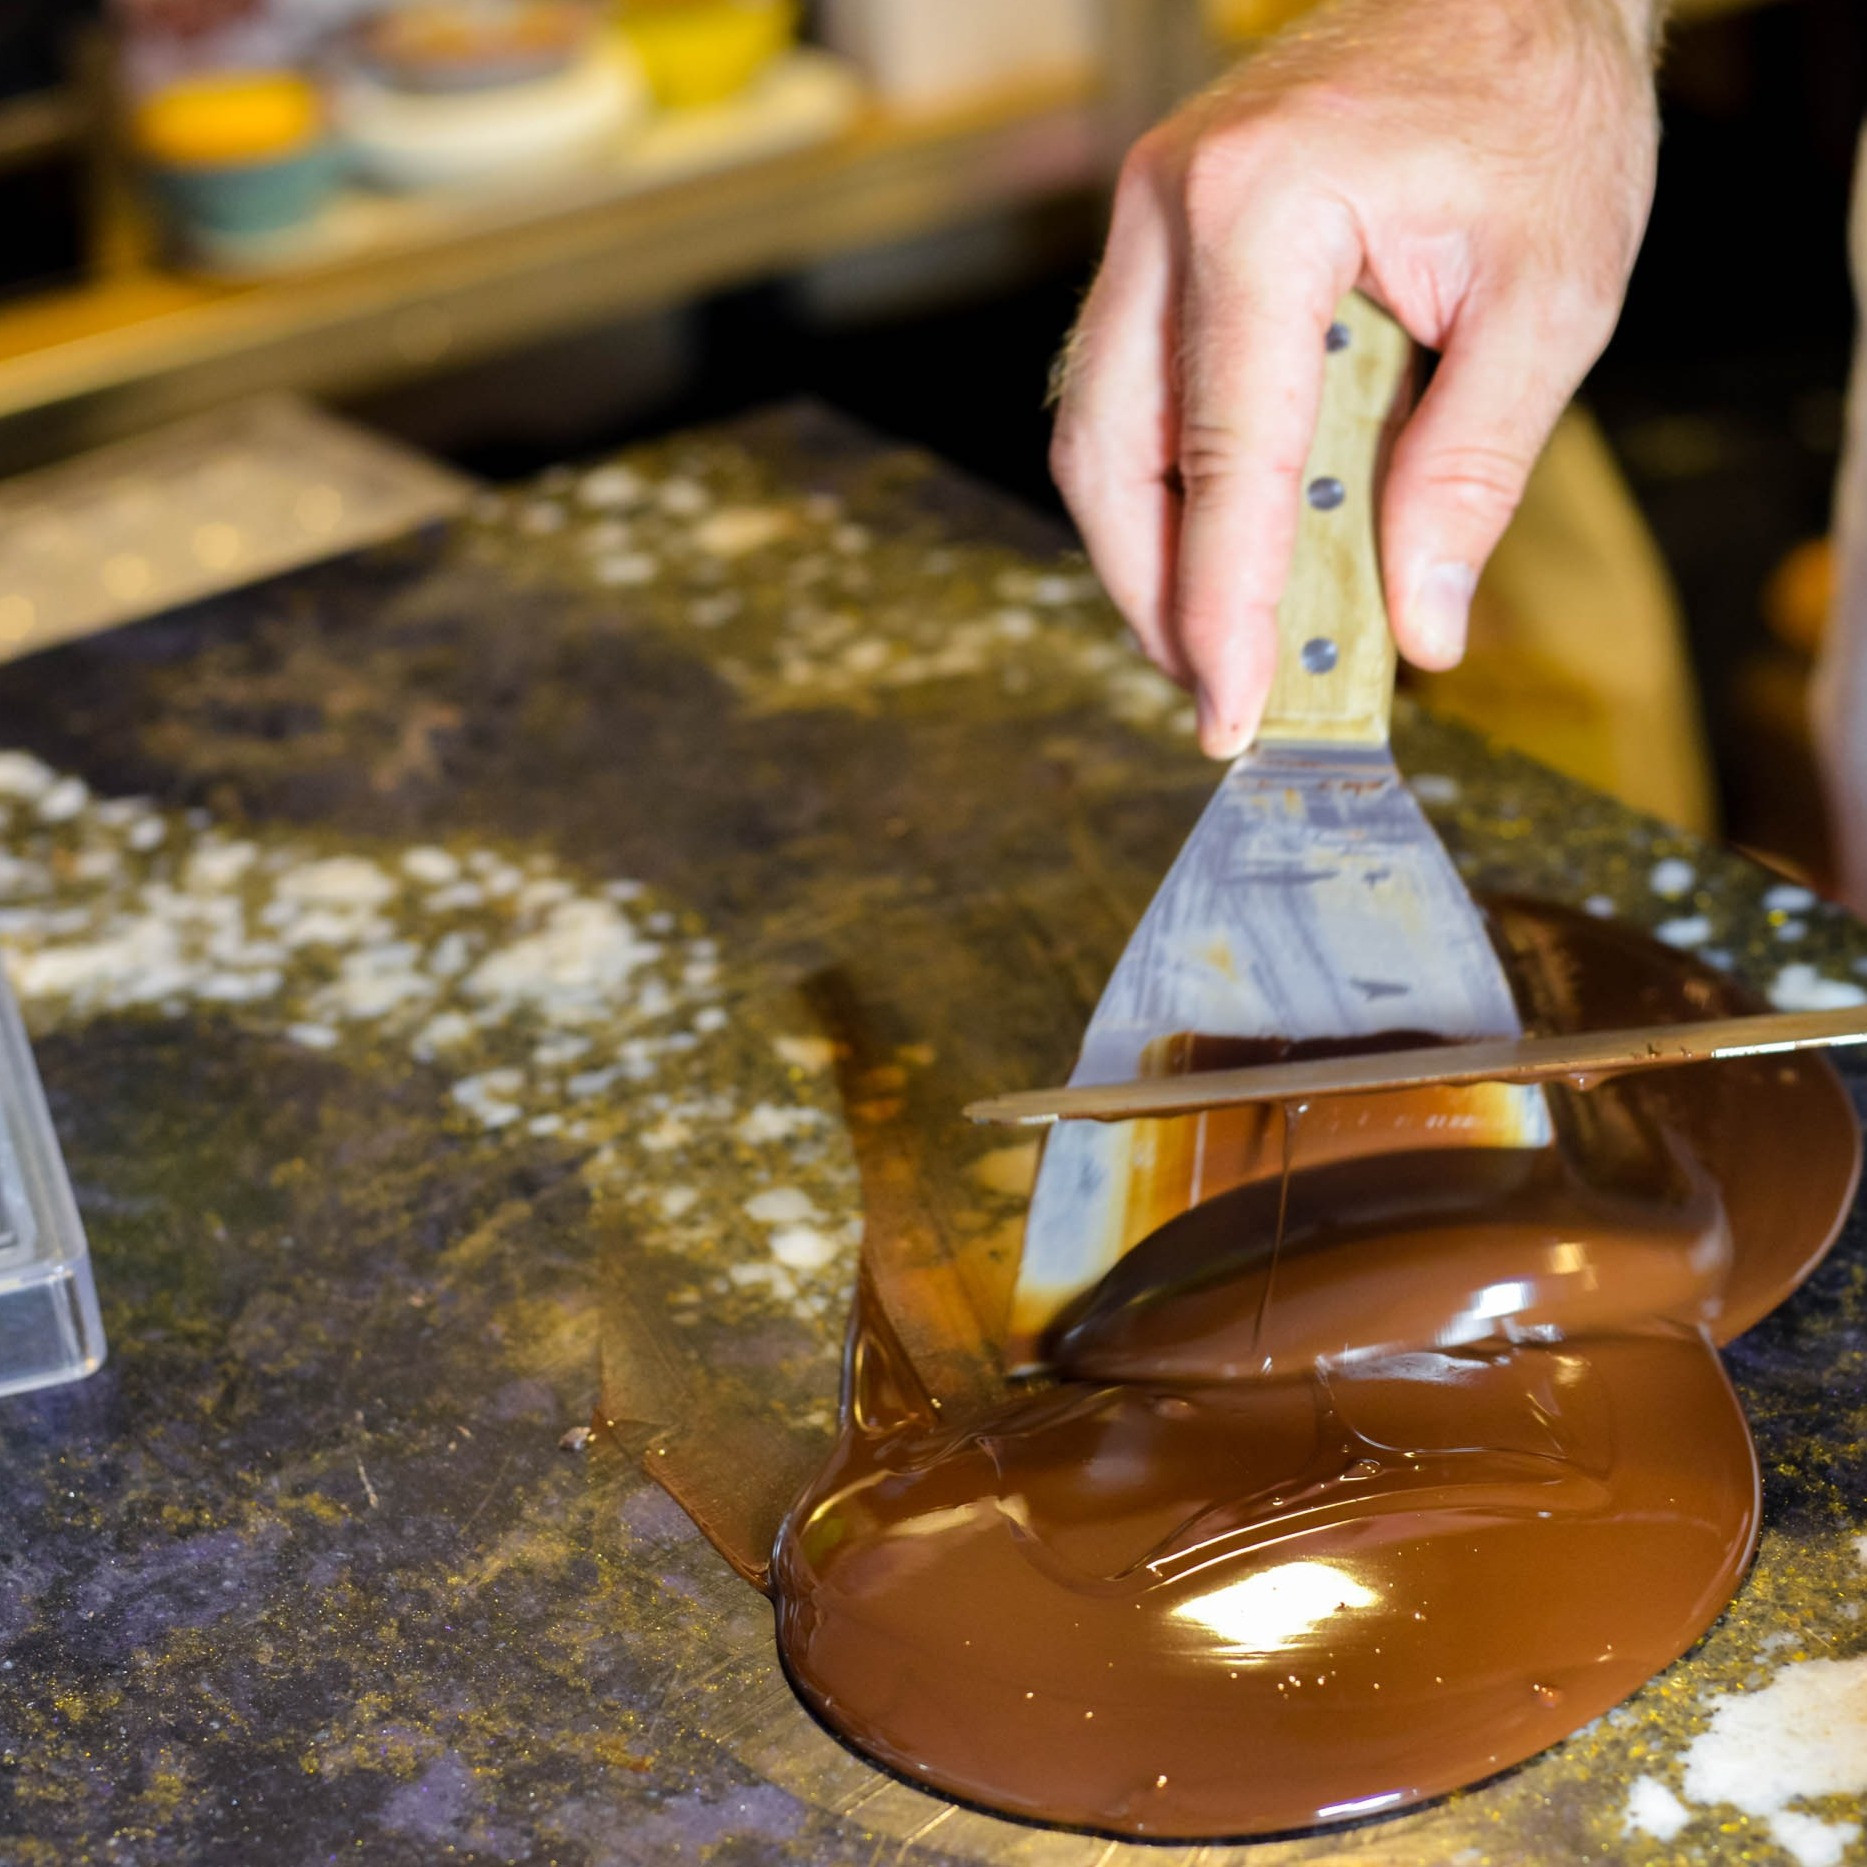 Group of 3 Chocolate Tempering Lesson